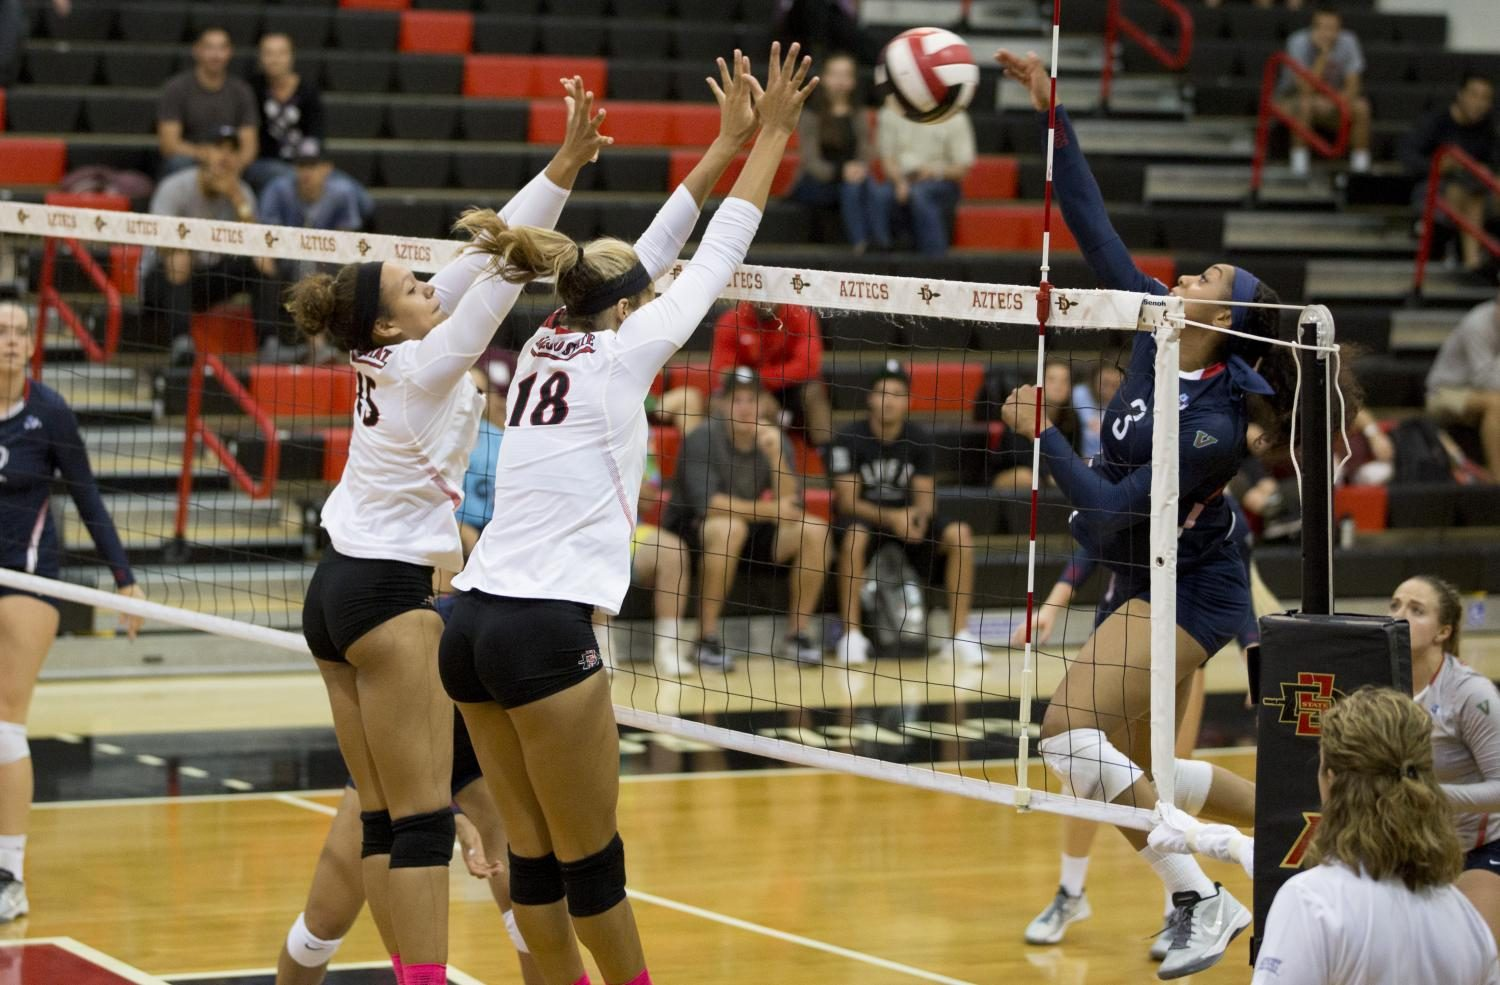 Senior+outside+hitter+Alexis+Cage+and+junior+middle+blocker+Deja+Harris+go+up+for+a+block+during+SDSU%27s+loss+to+Loyola+Marymount.